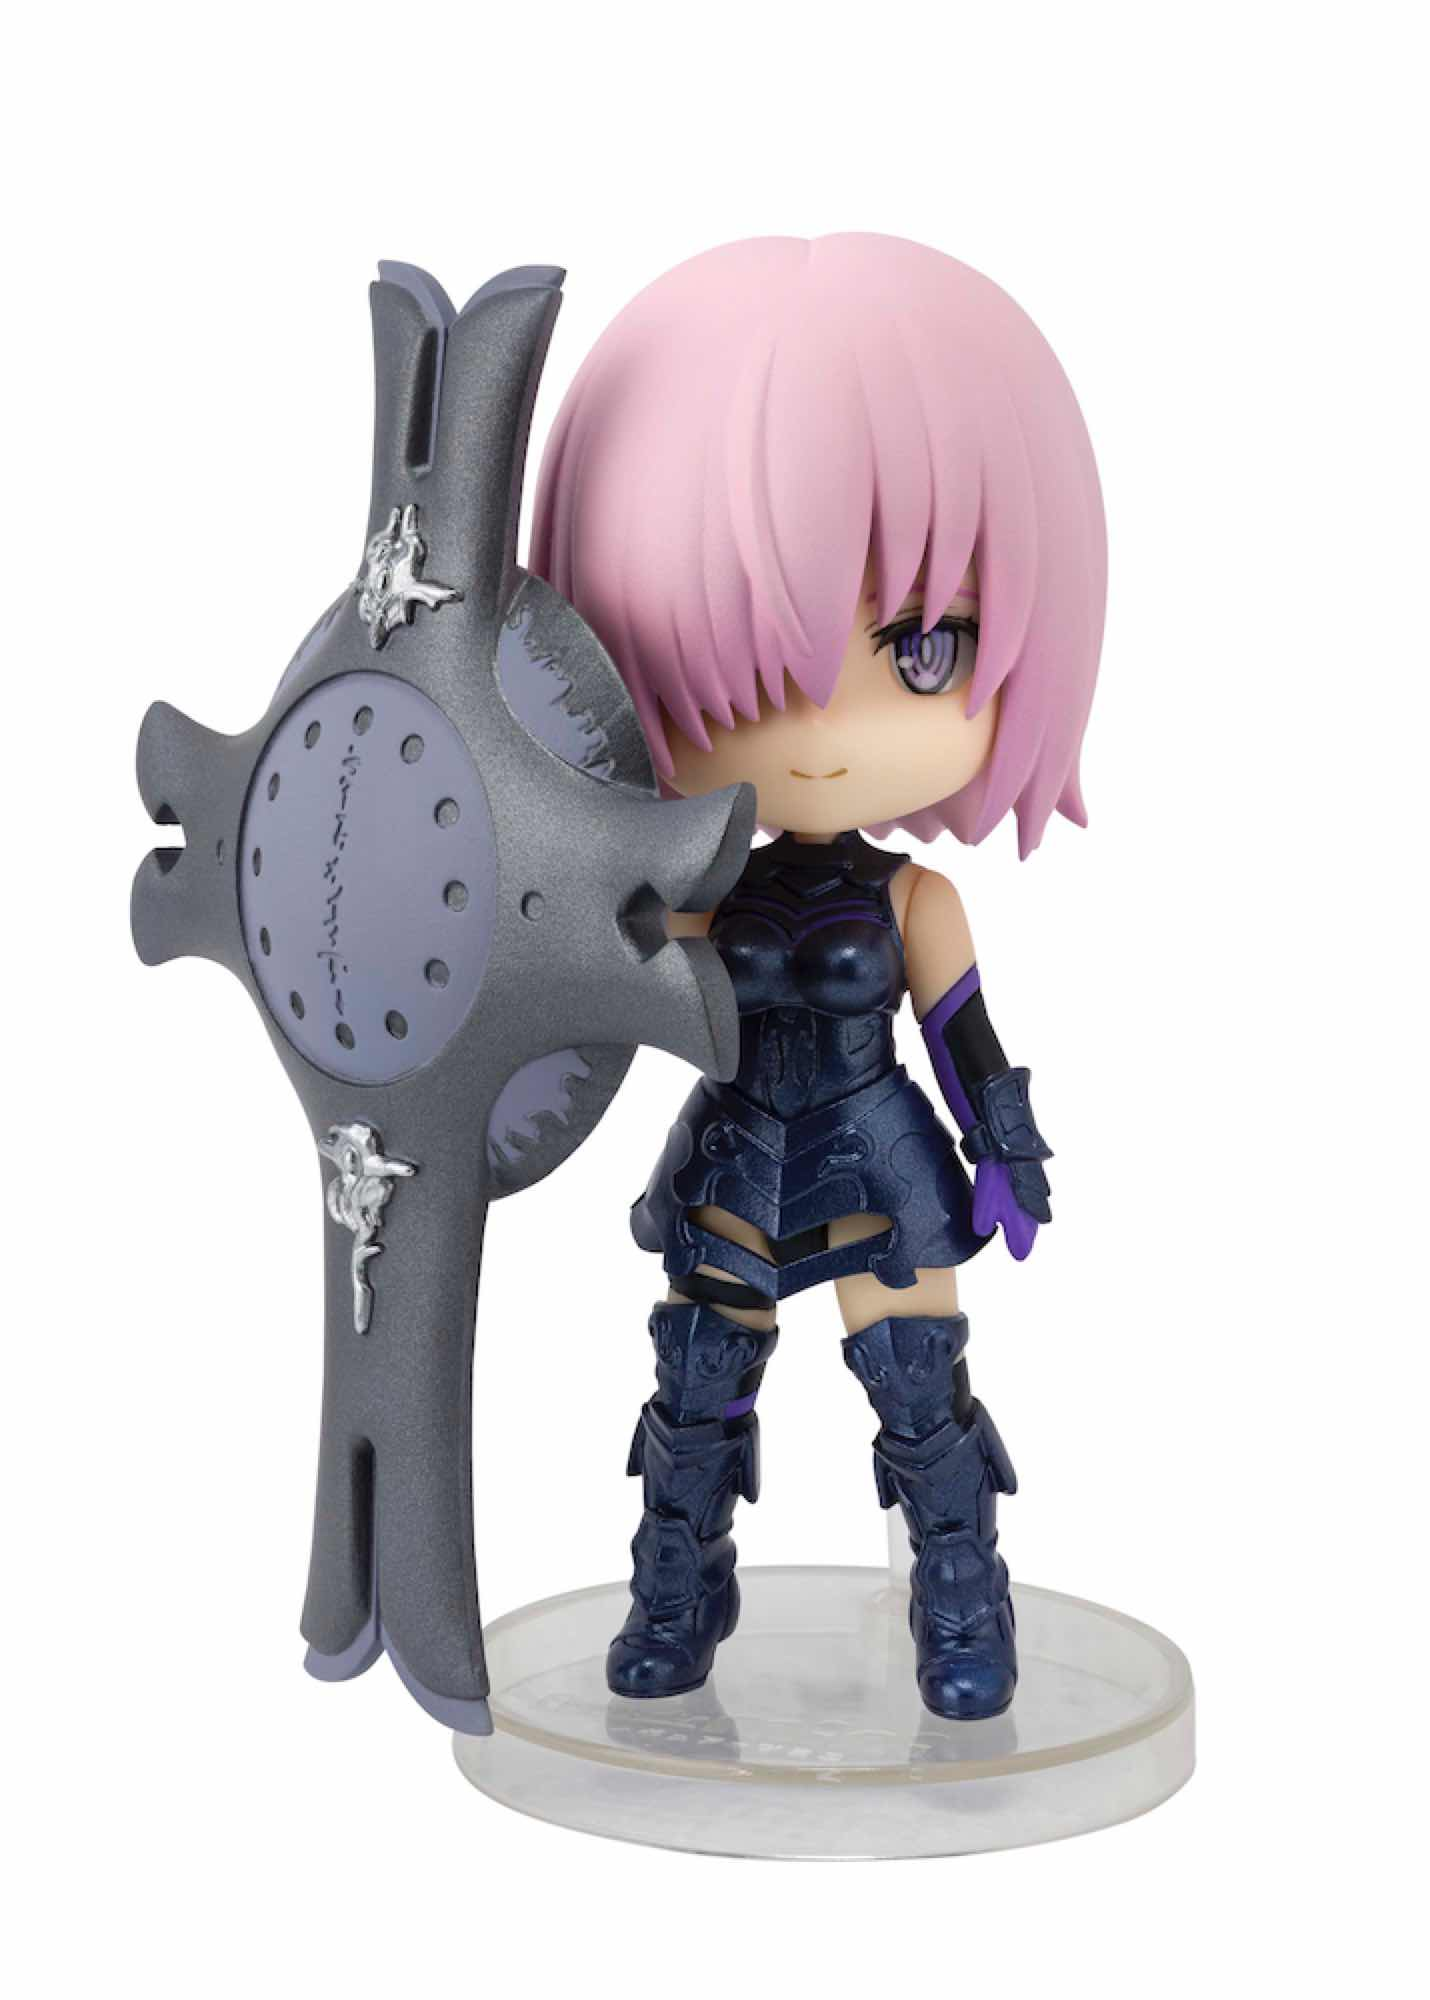 [RESERVA MAYO DE 2020]MASH KYRIELIGHT FIG. 9 CM FATE/GRAND ORDER ABSOLUTE DEMONIC FRONT